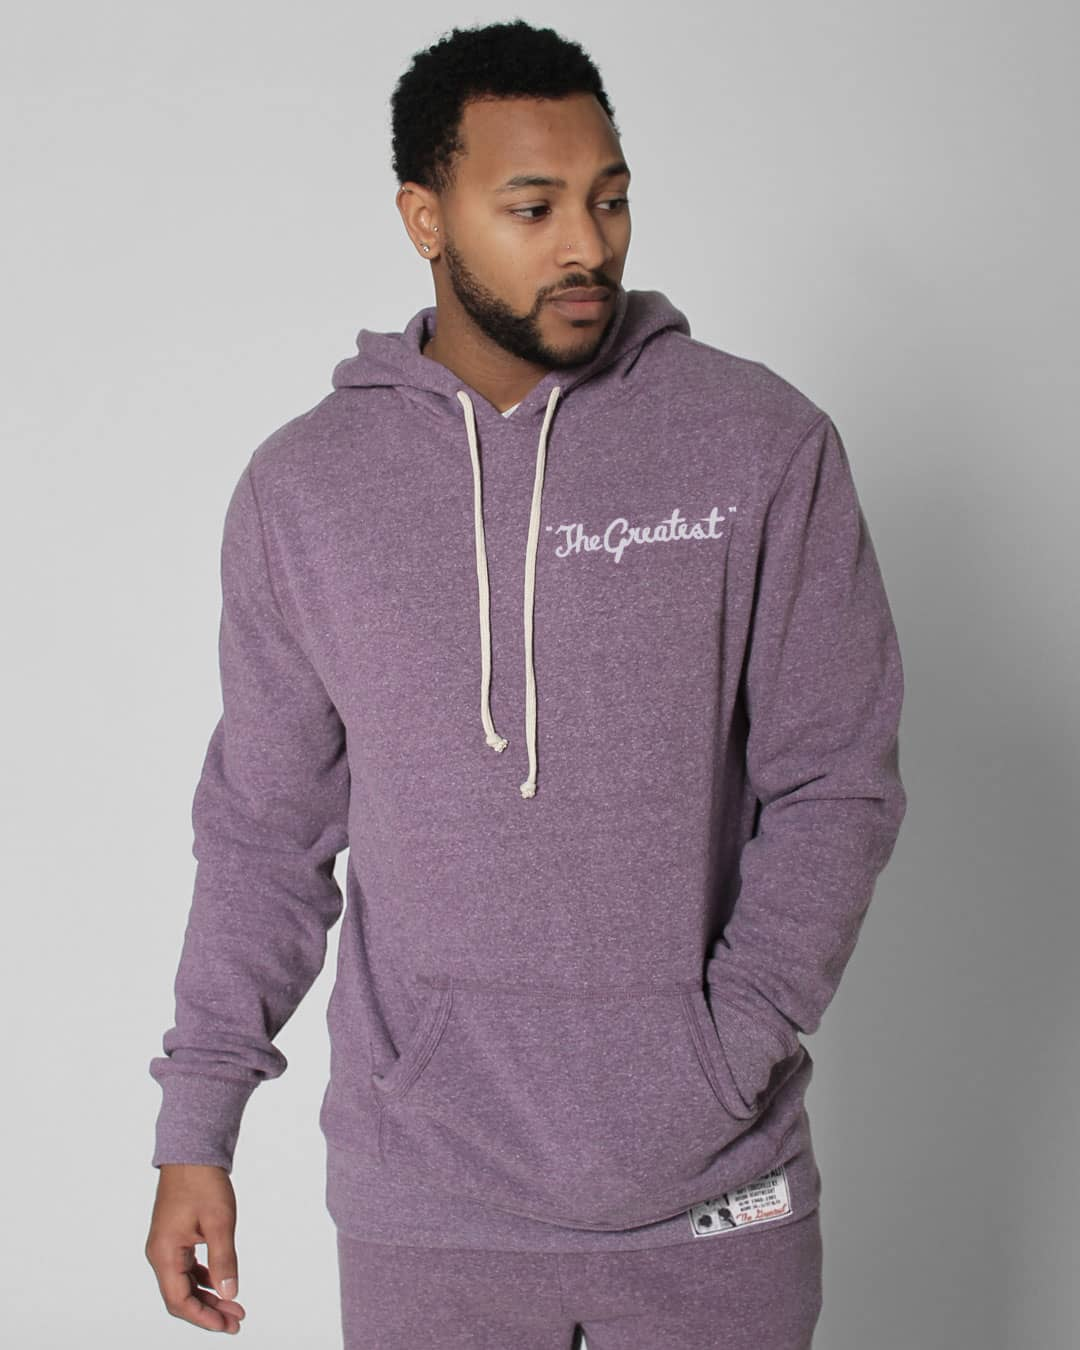 Ali the Greatest Heritage Pullover Hoody - Roots of Inc dba Roots of Fight